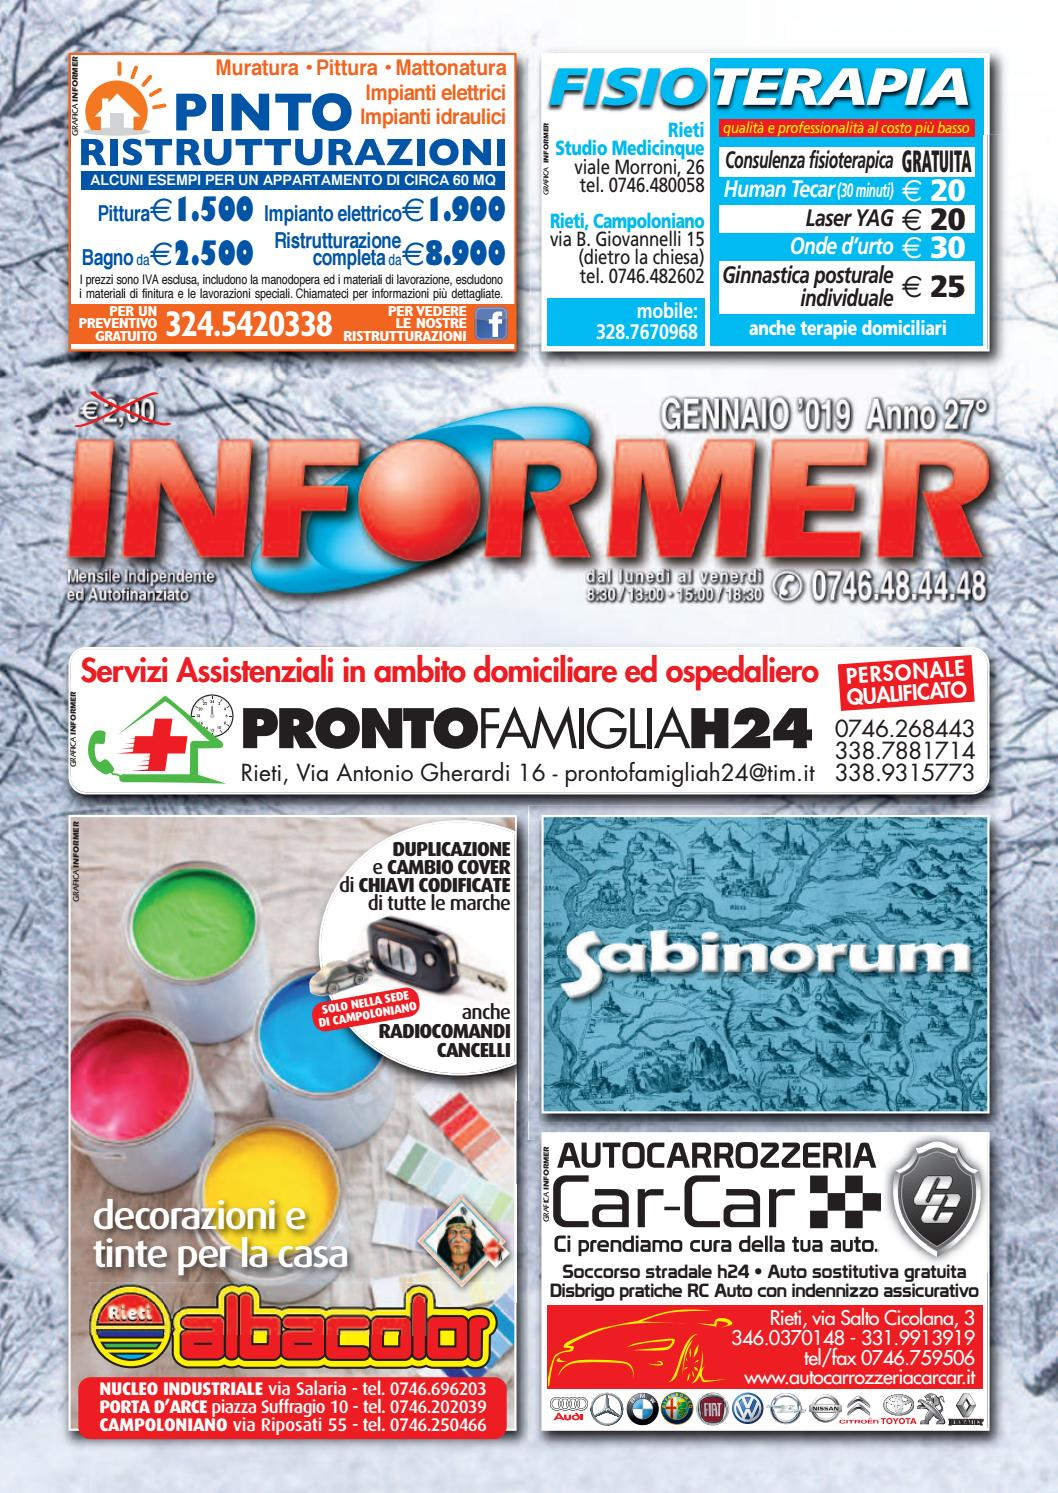 new concept be5e2 fa925 INFORMER gennaio 2019 by informer - issuu